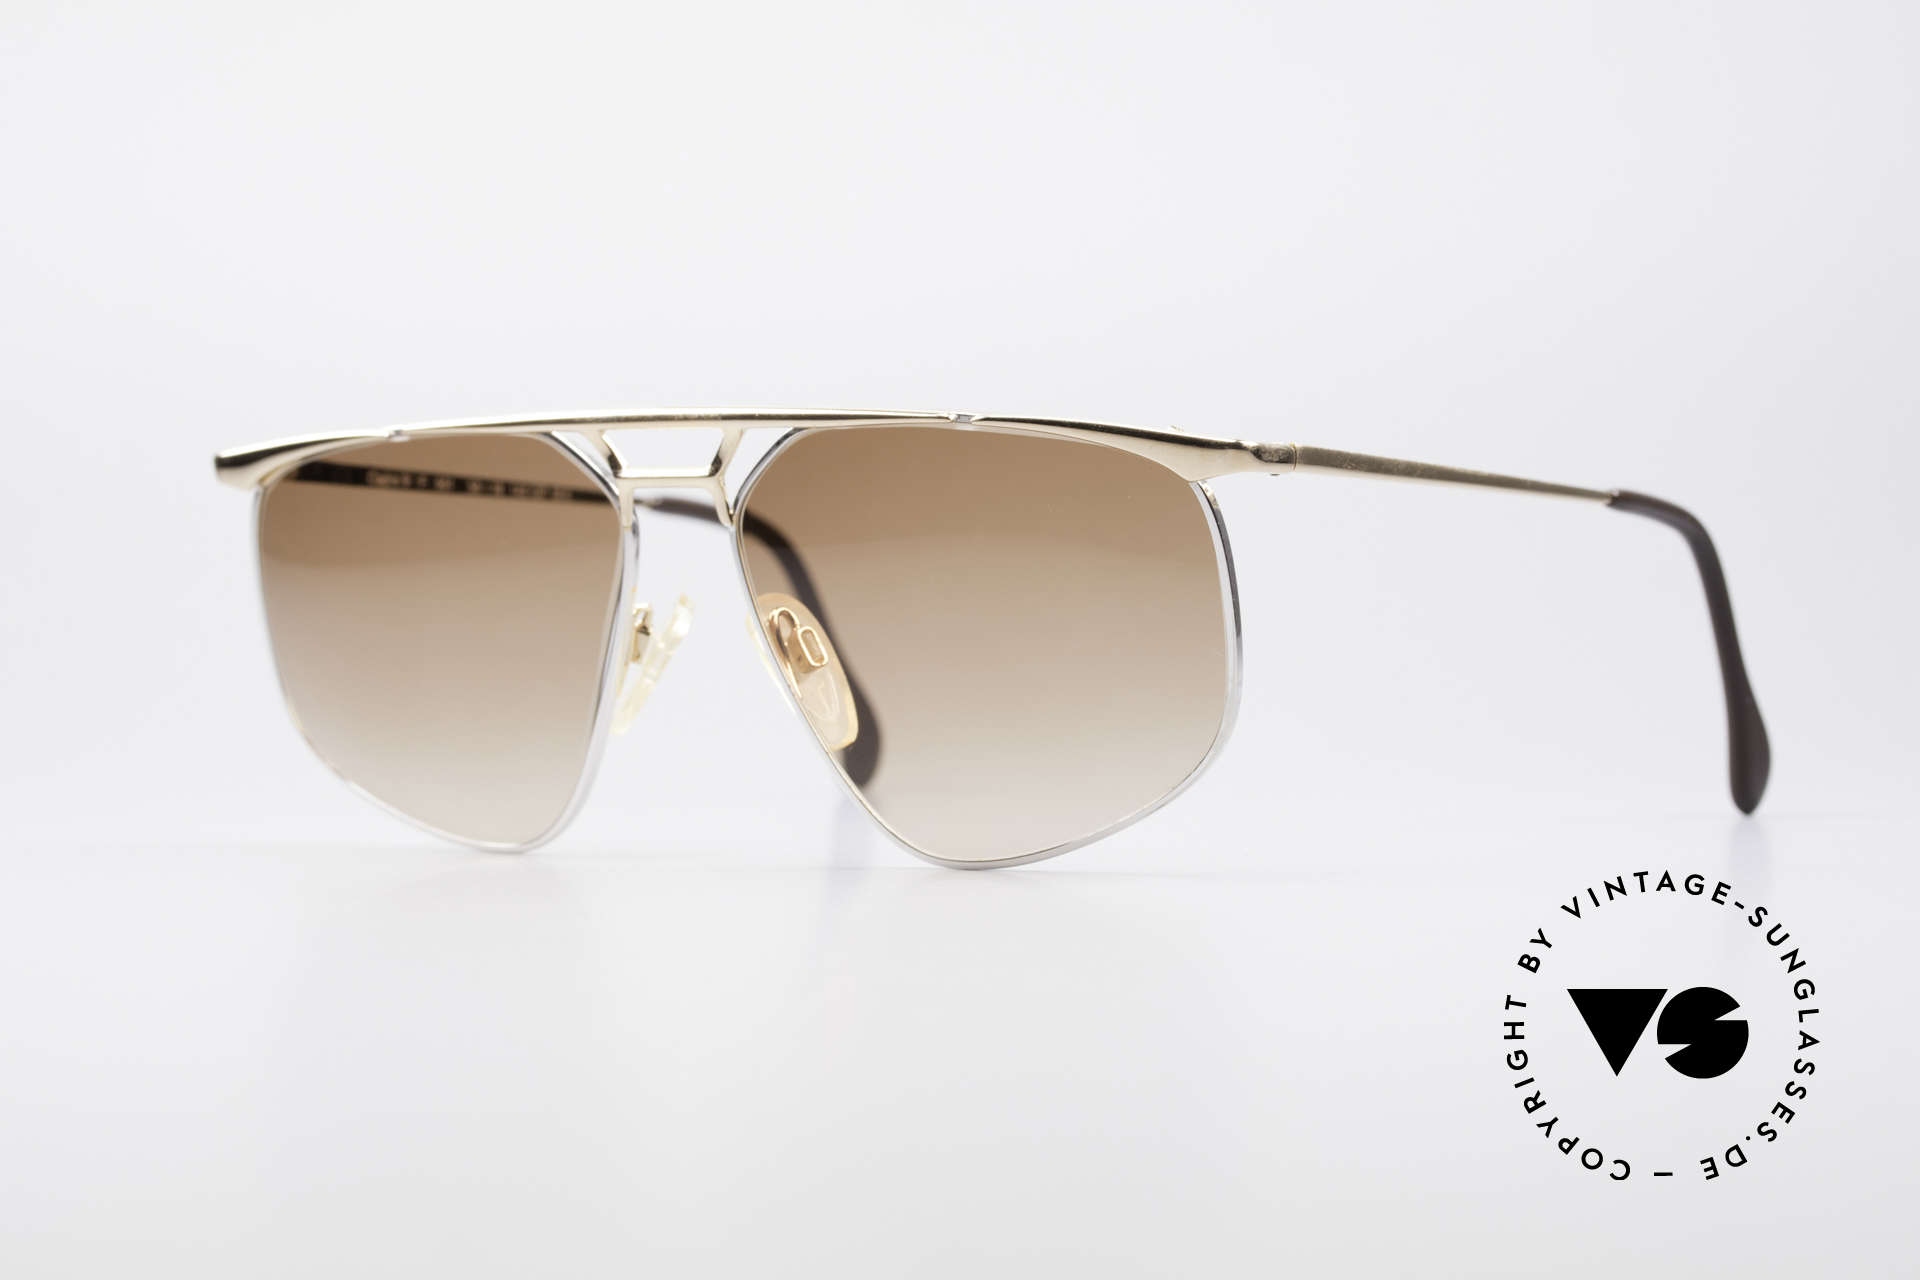 Zollitsch Cadre 9 18kt Gold Plated Sunglasses, vintage Zollitsch designer sunglasses from the 1980's, Made for Men